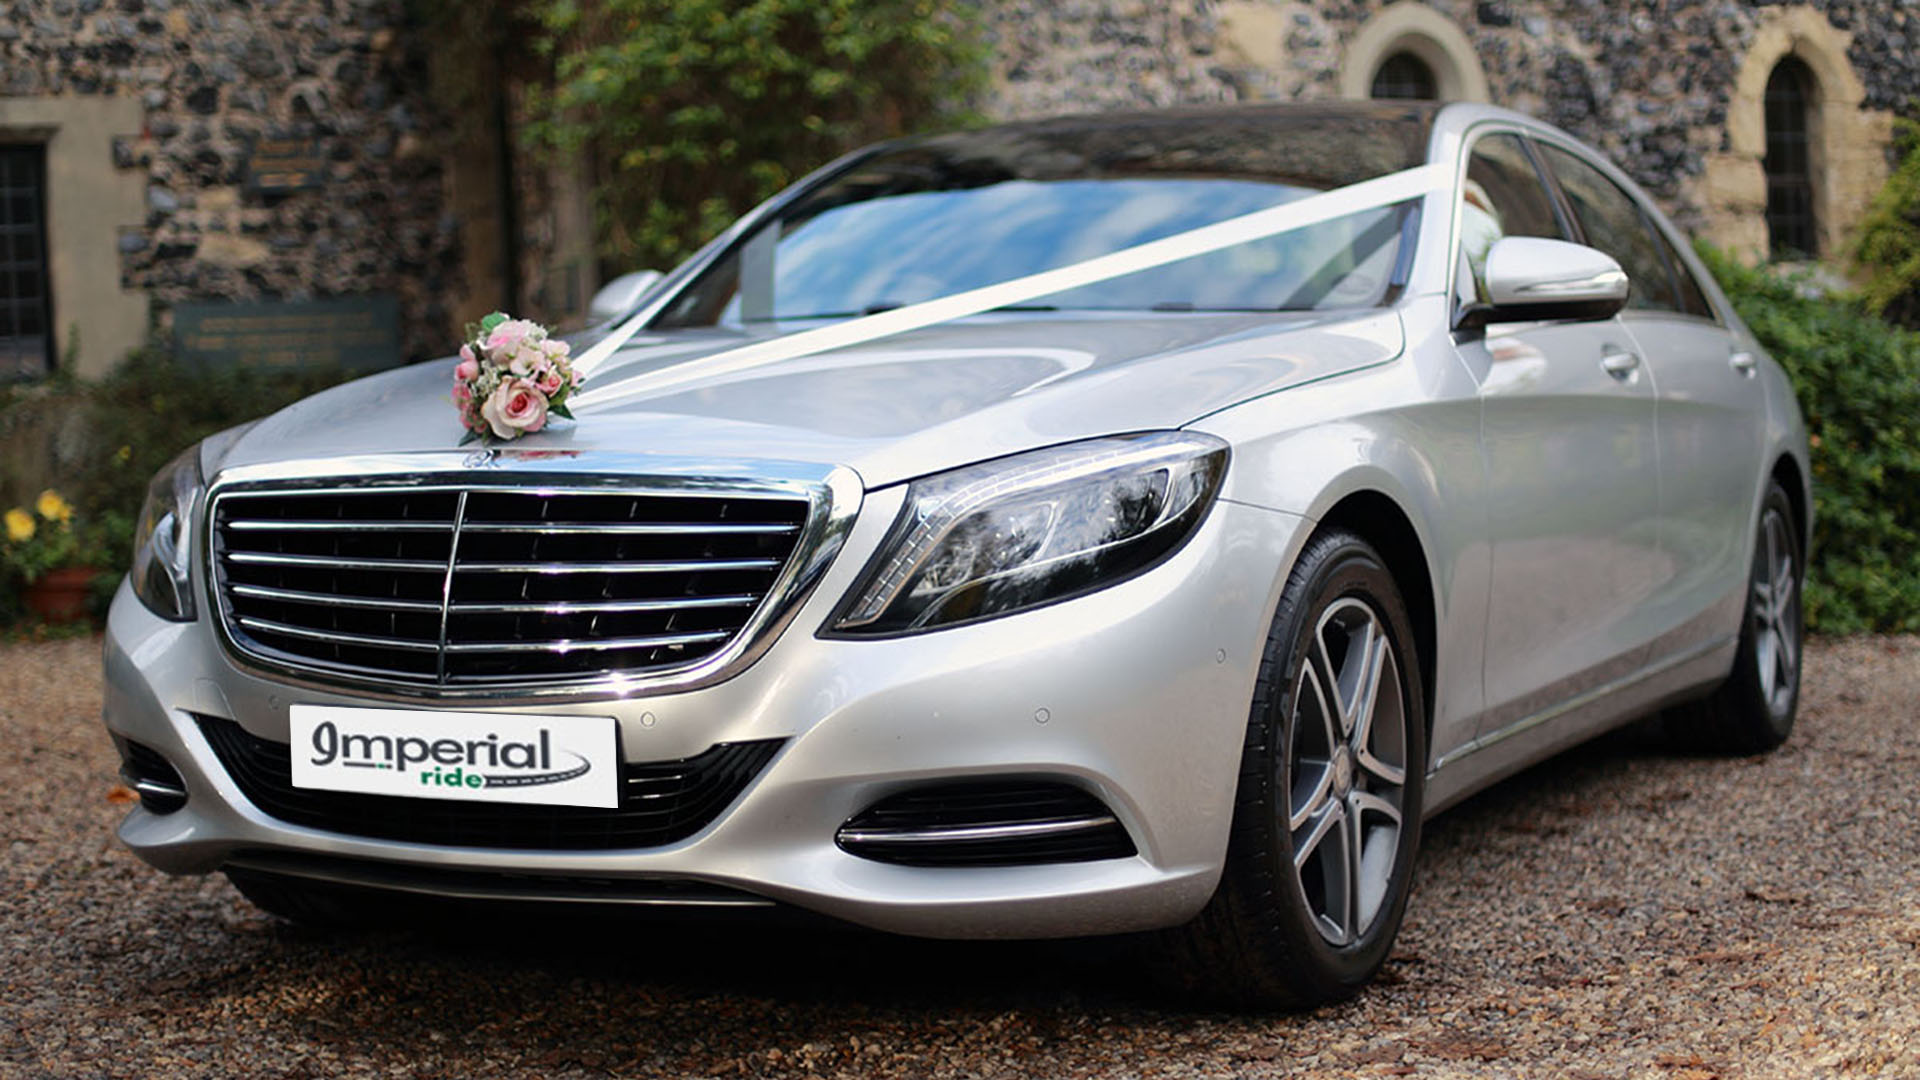 s-class-wedding-hire-in-camden